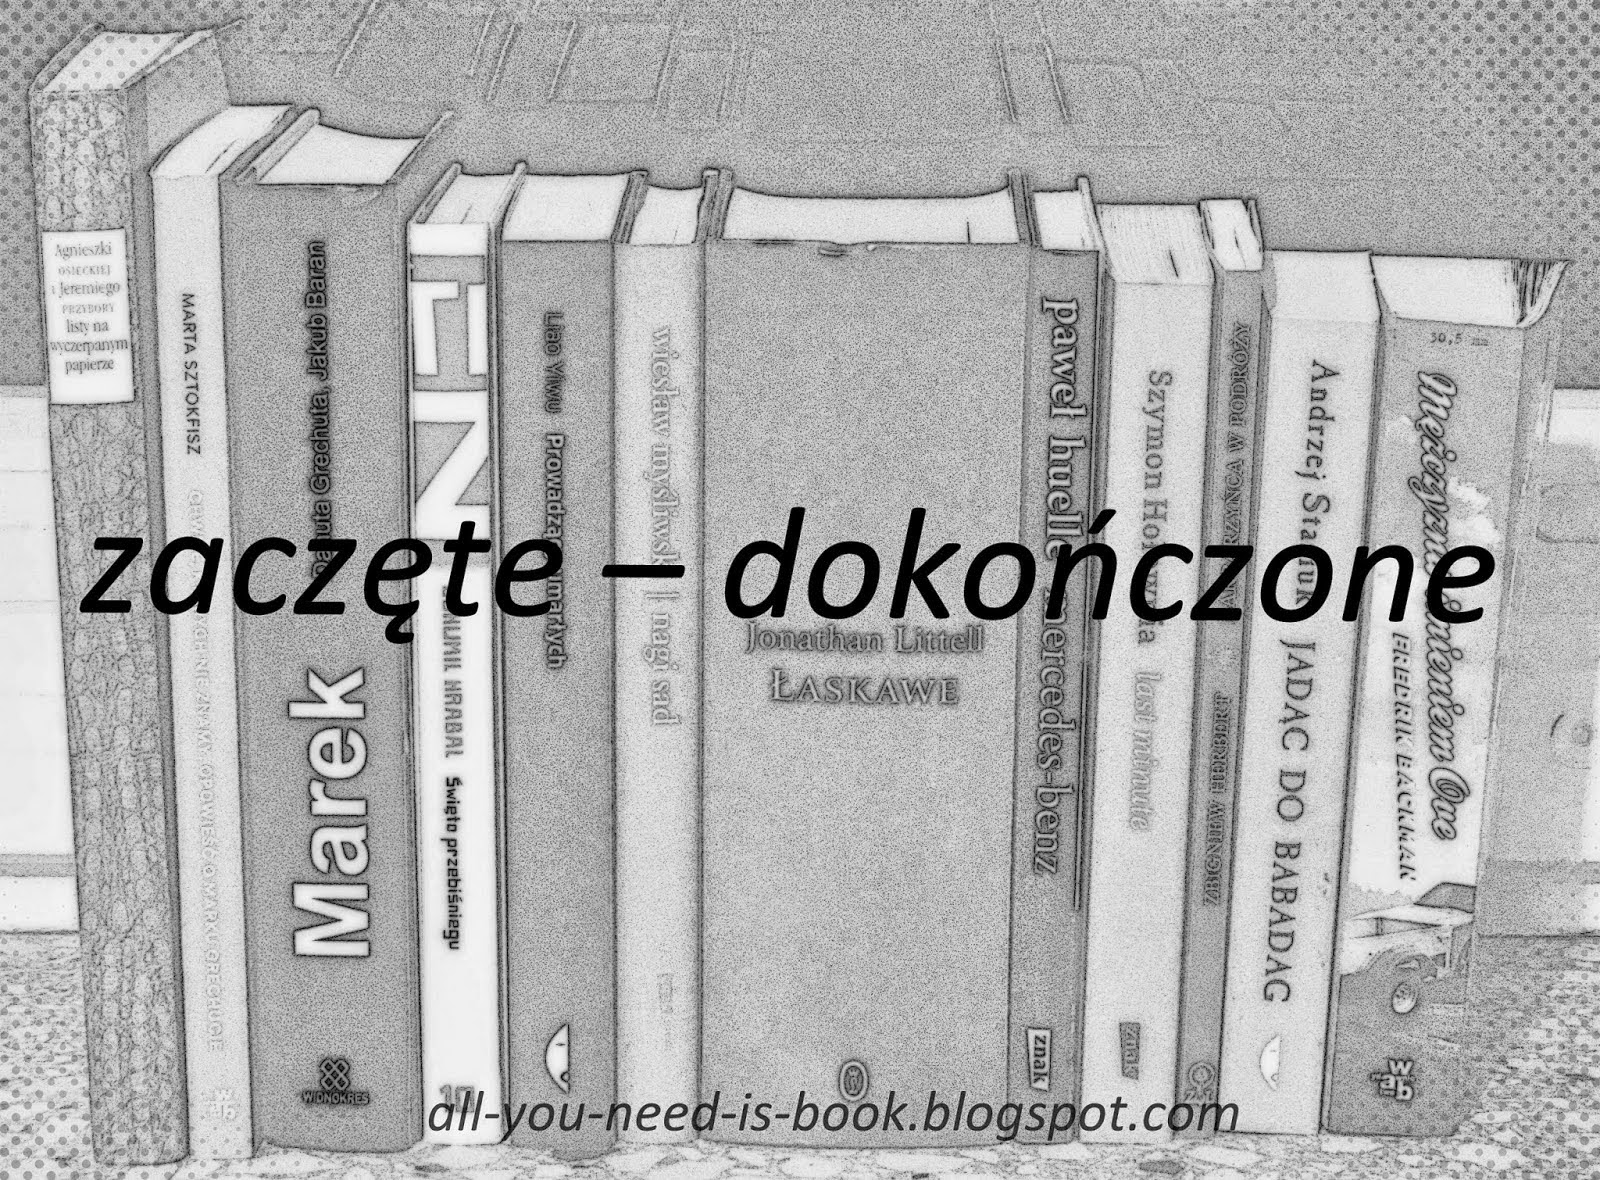 http://all-you-need-is-book.blogspot.com/search/label/zacz%C4%99te%20-%20doko%C5%84czone